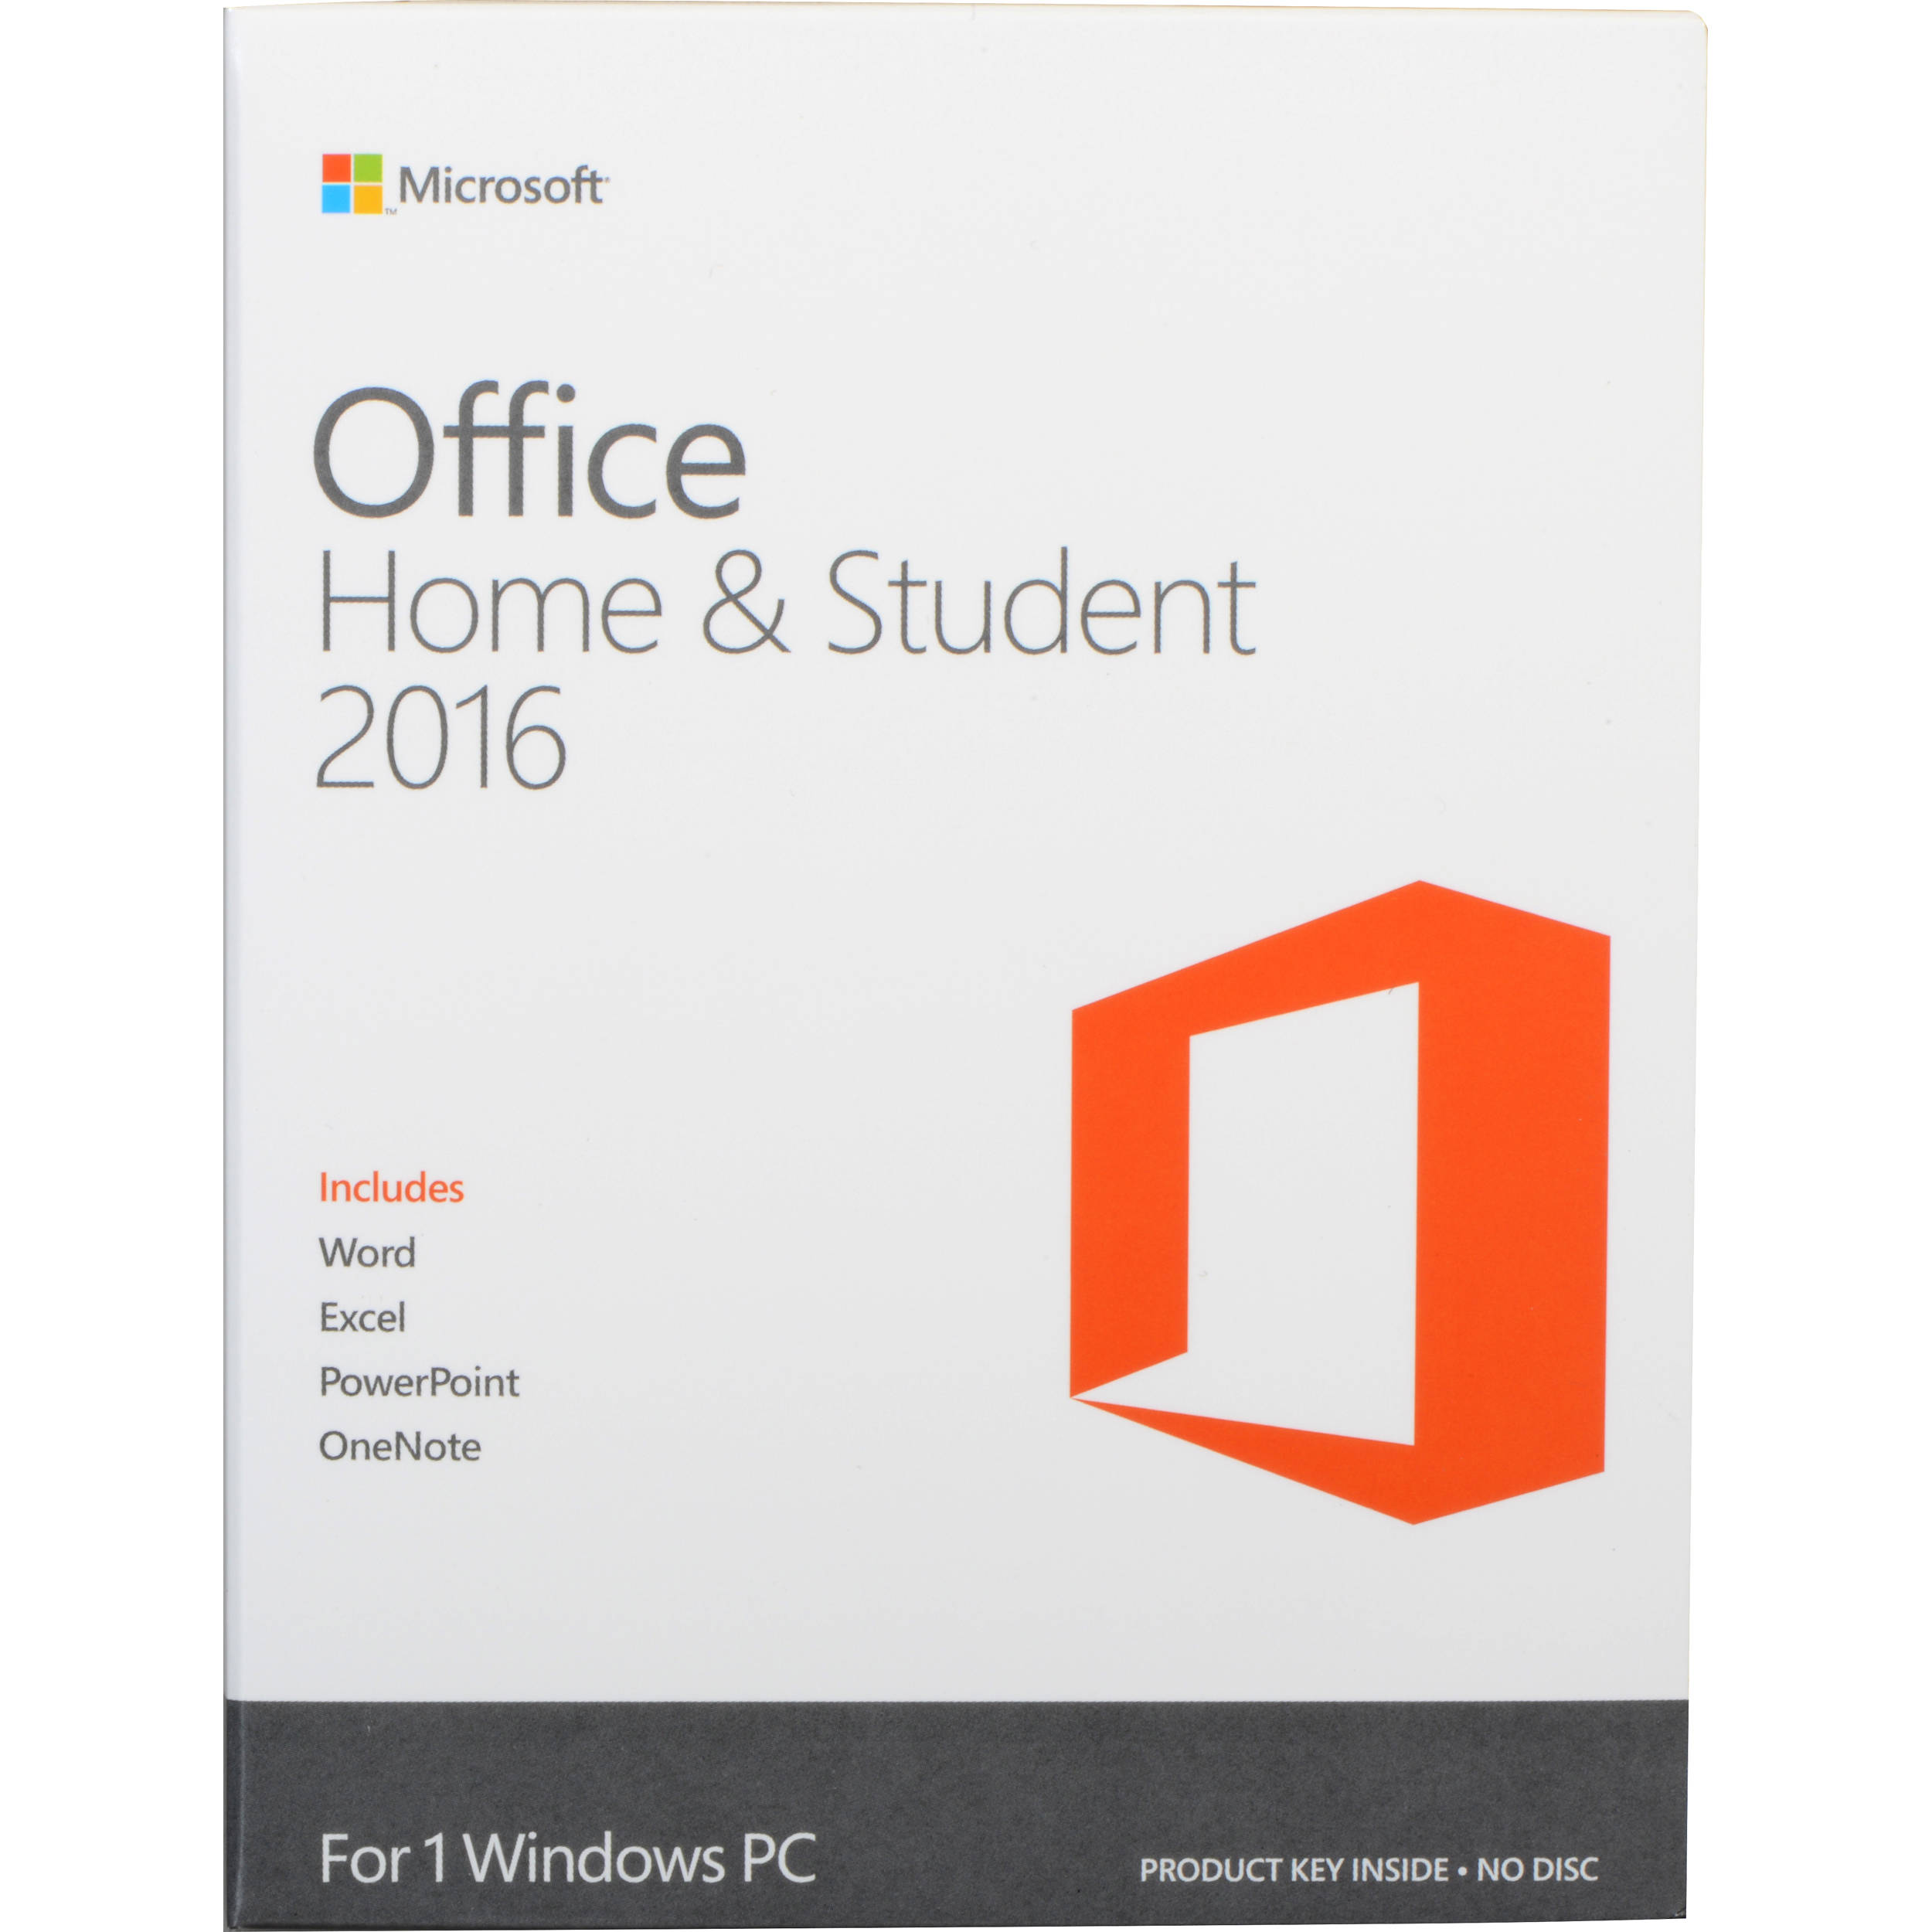 Microsoft office images - 6e